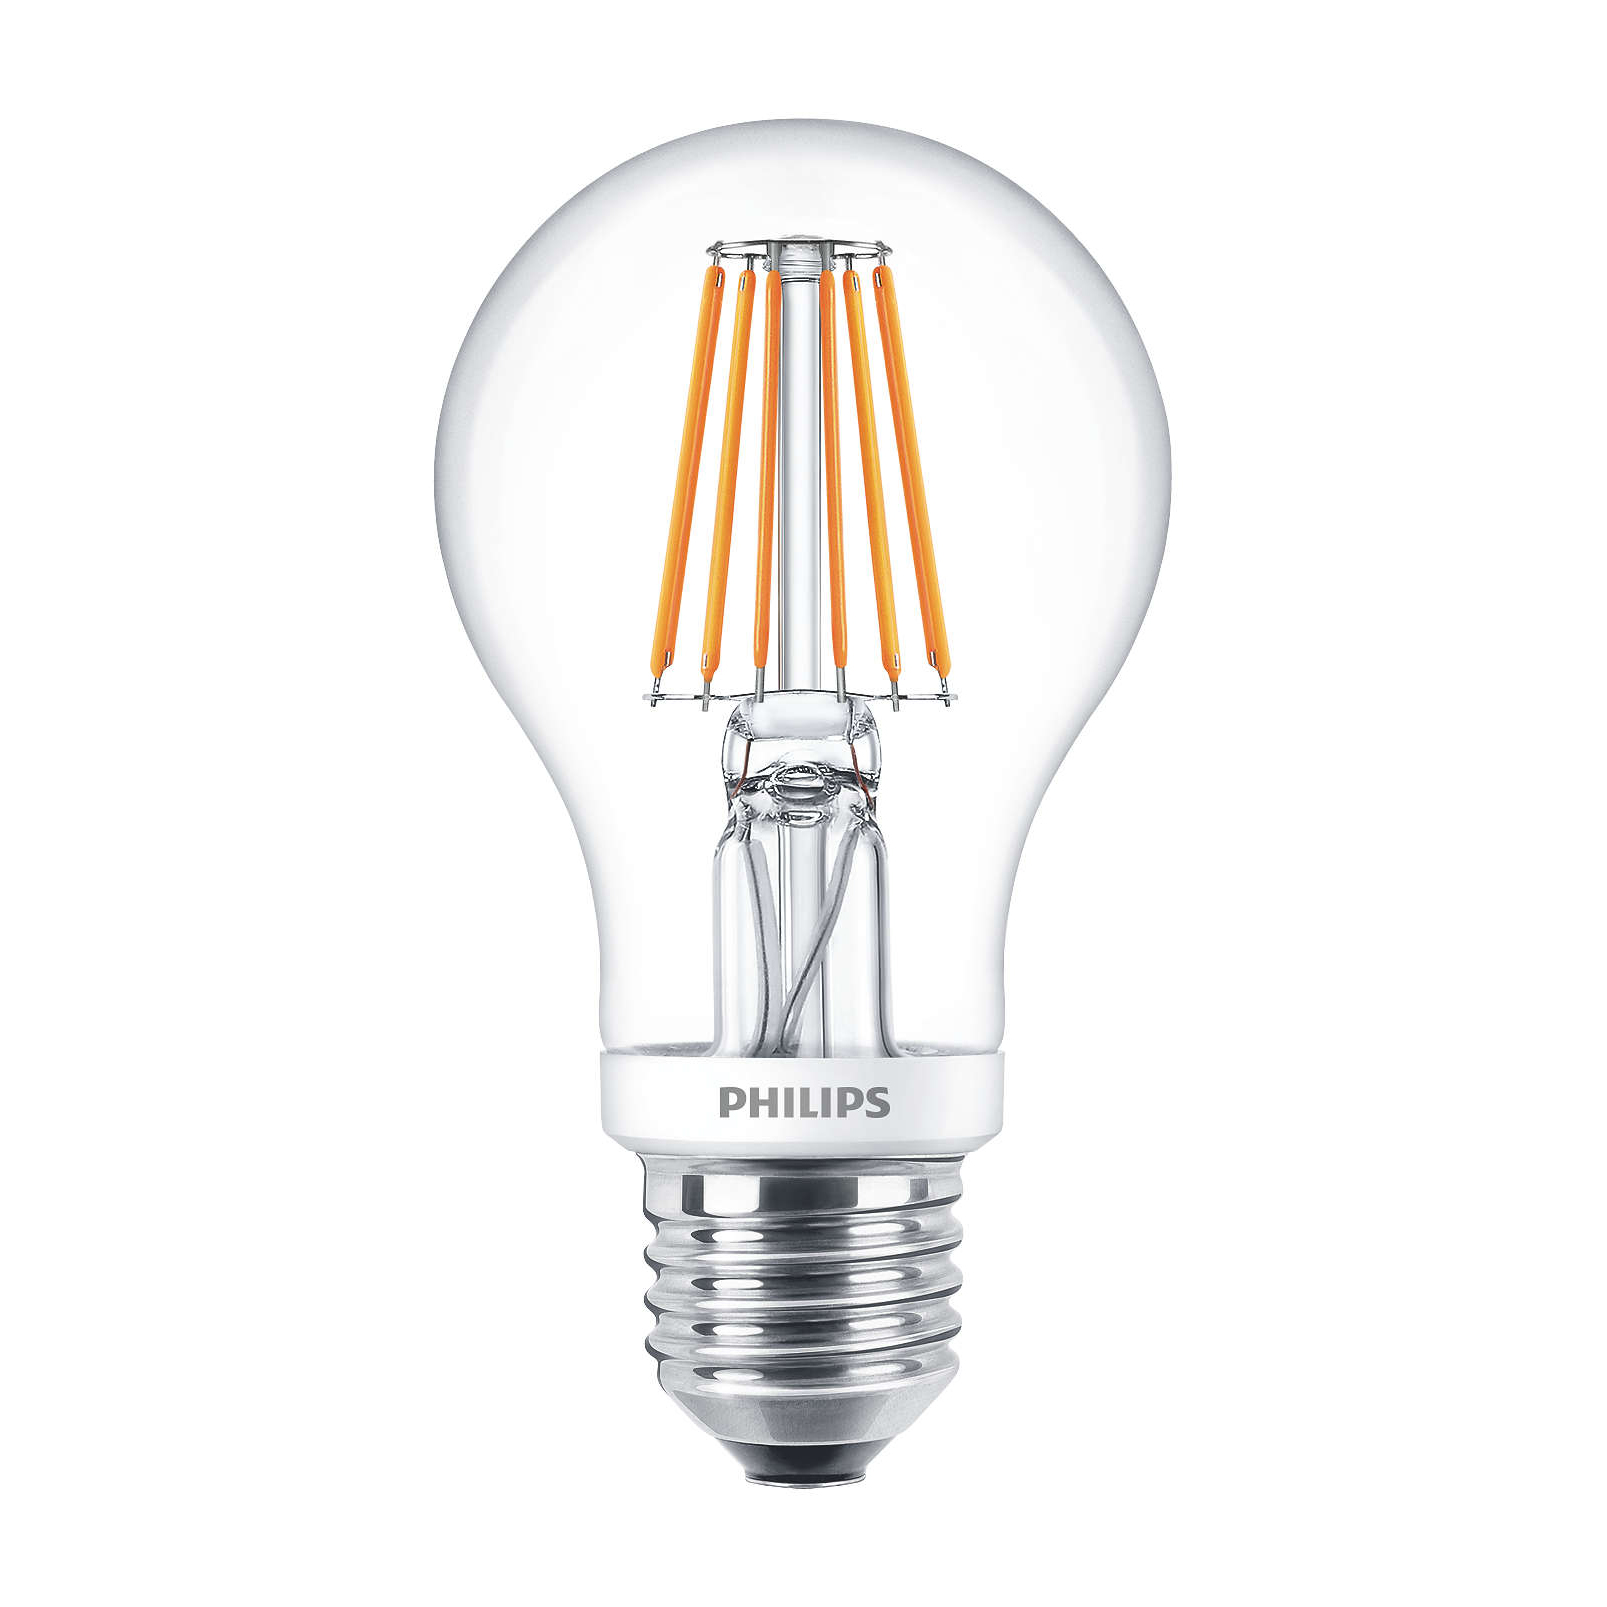 philips led filament bulb clear a60 e27 7 5w 2700k. Black Bedroom Furniture Sets. Home Design Ideas